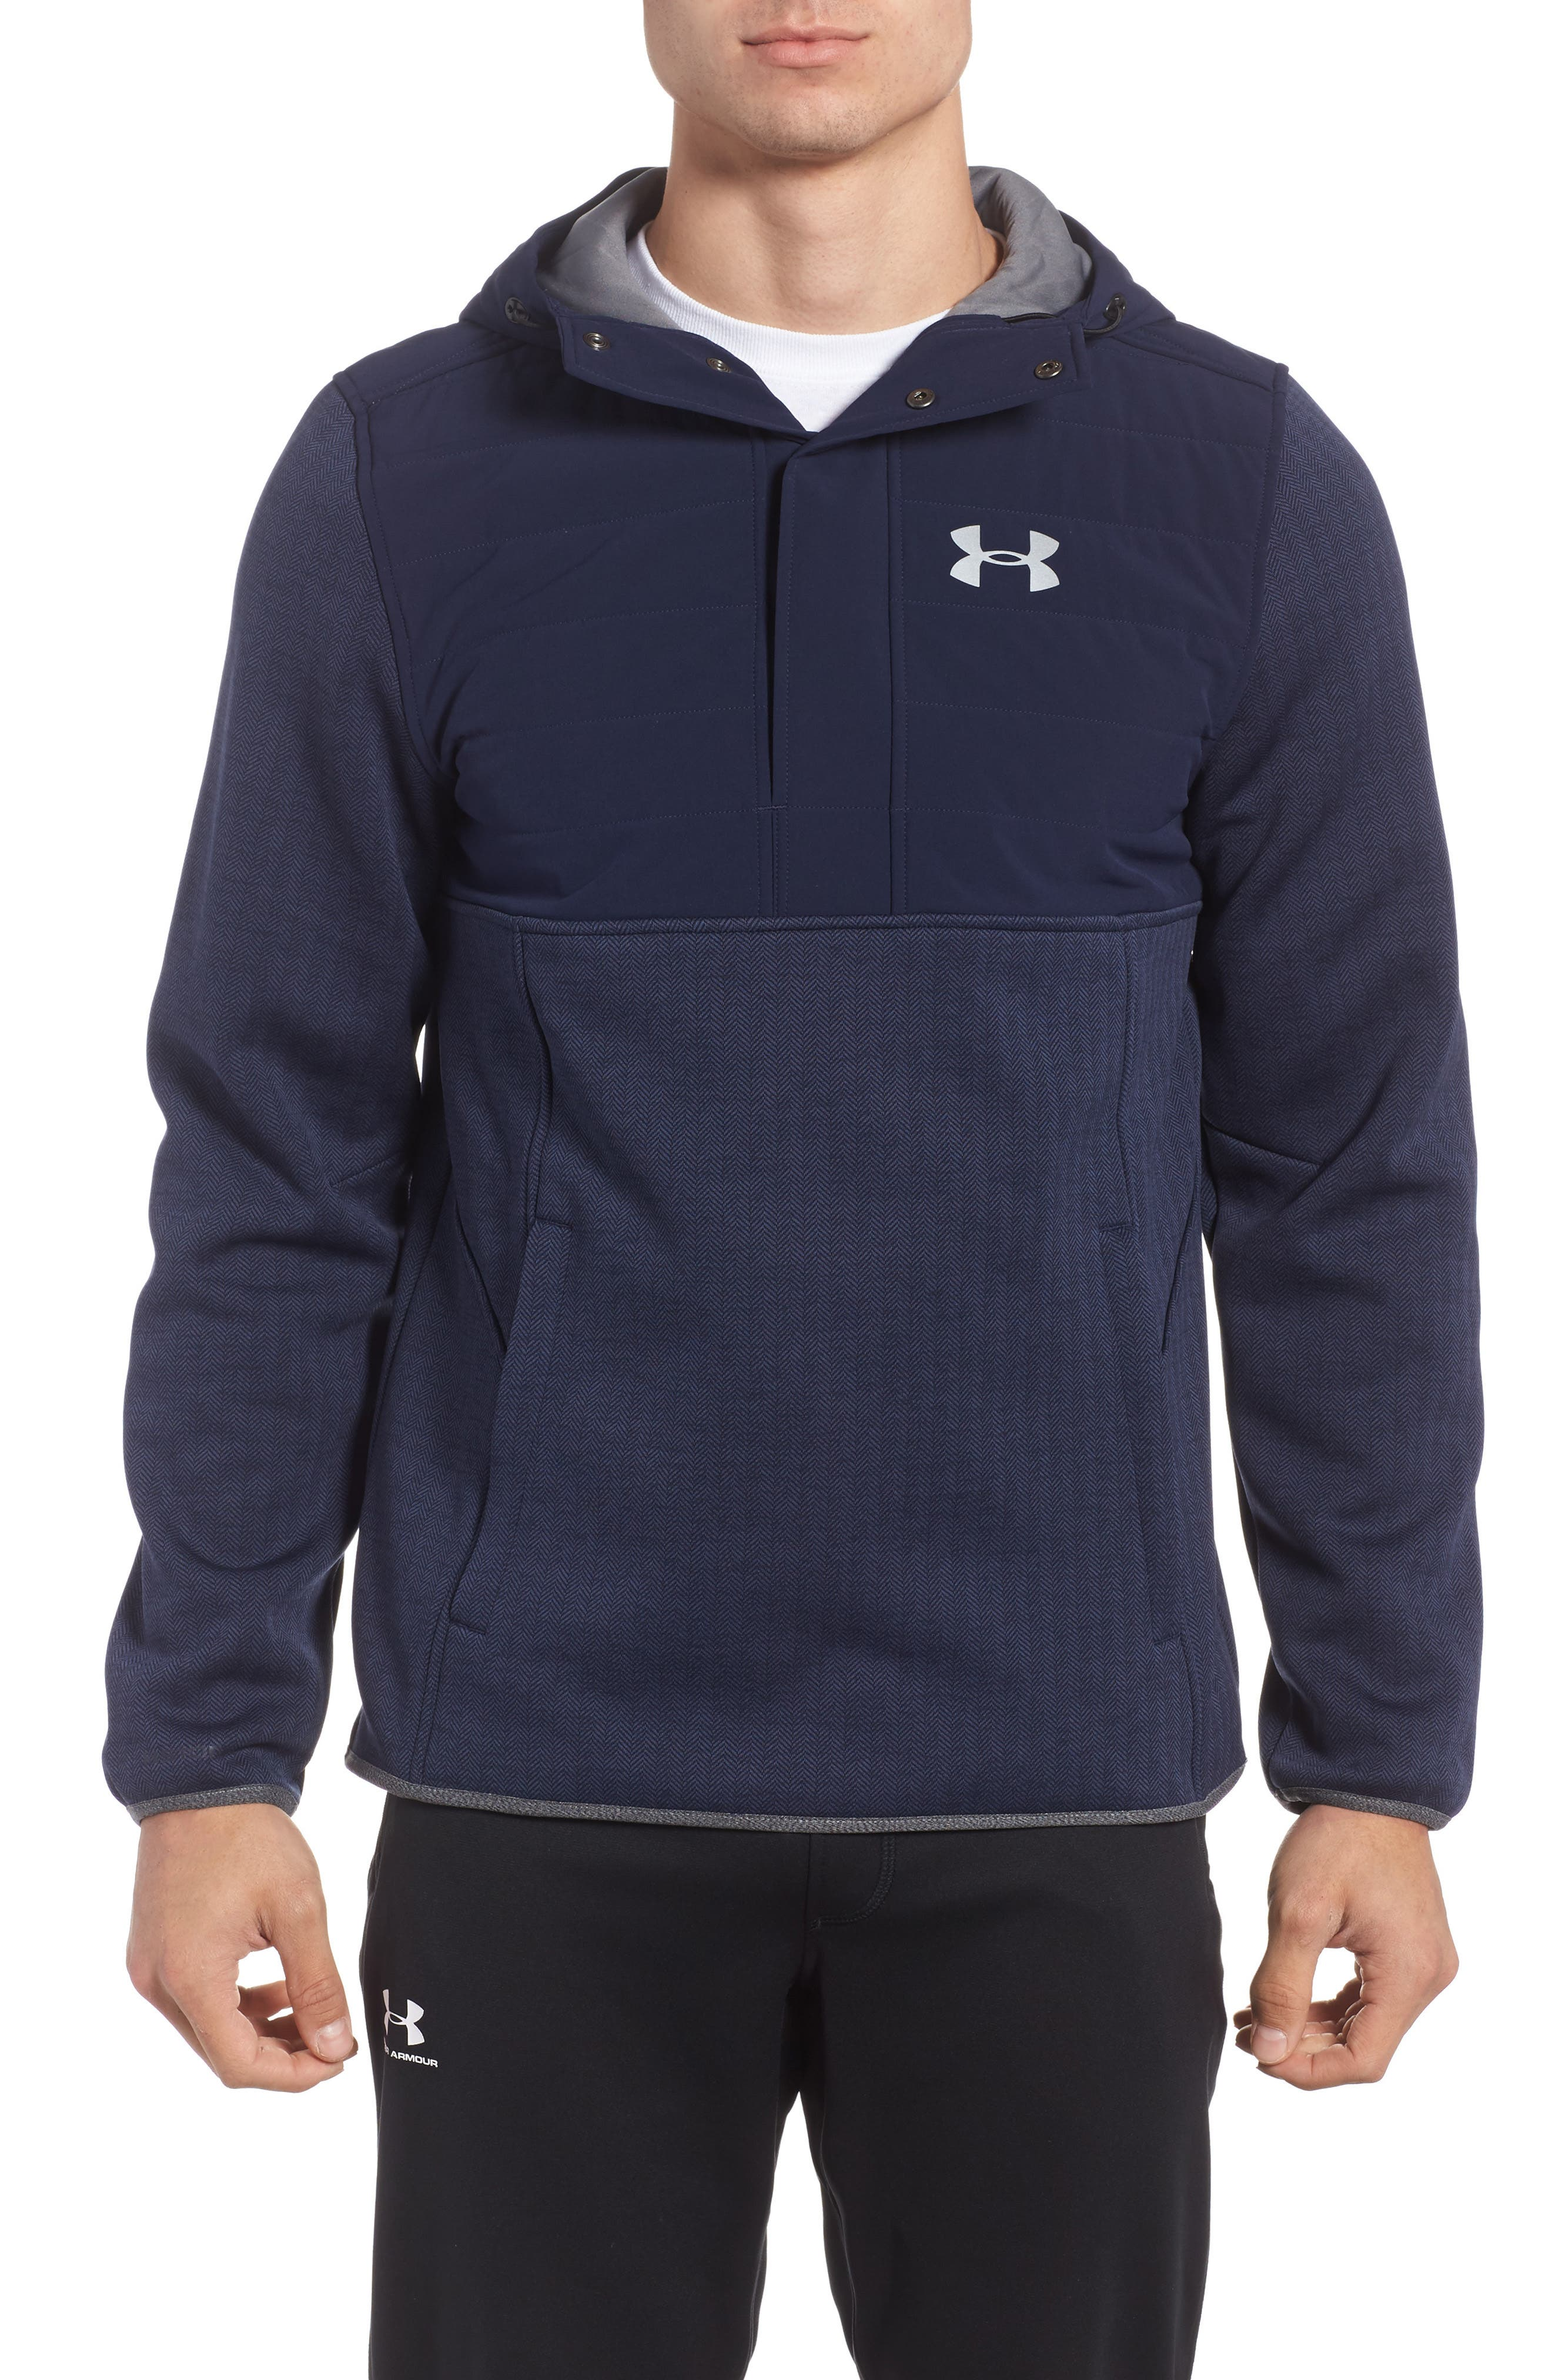 Henley Hoodie,                             Main thumbnail 1, color,                             Midnight Navy / Reflective